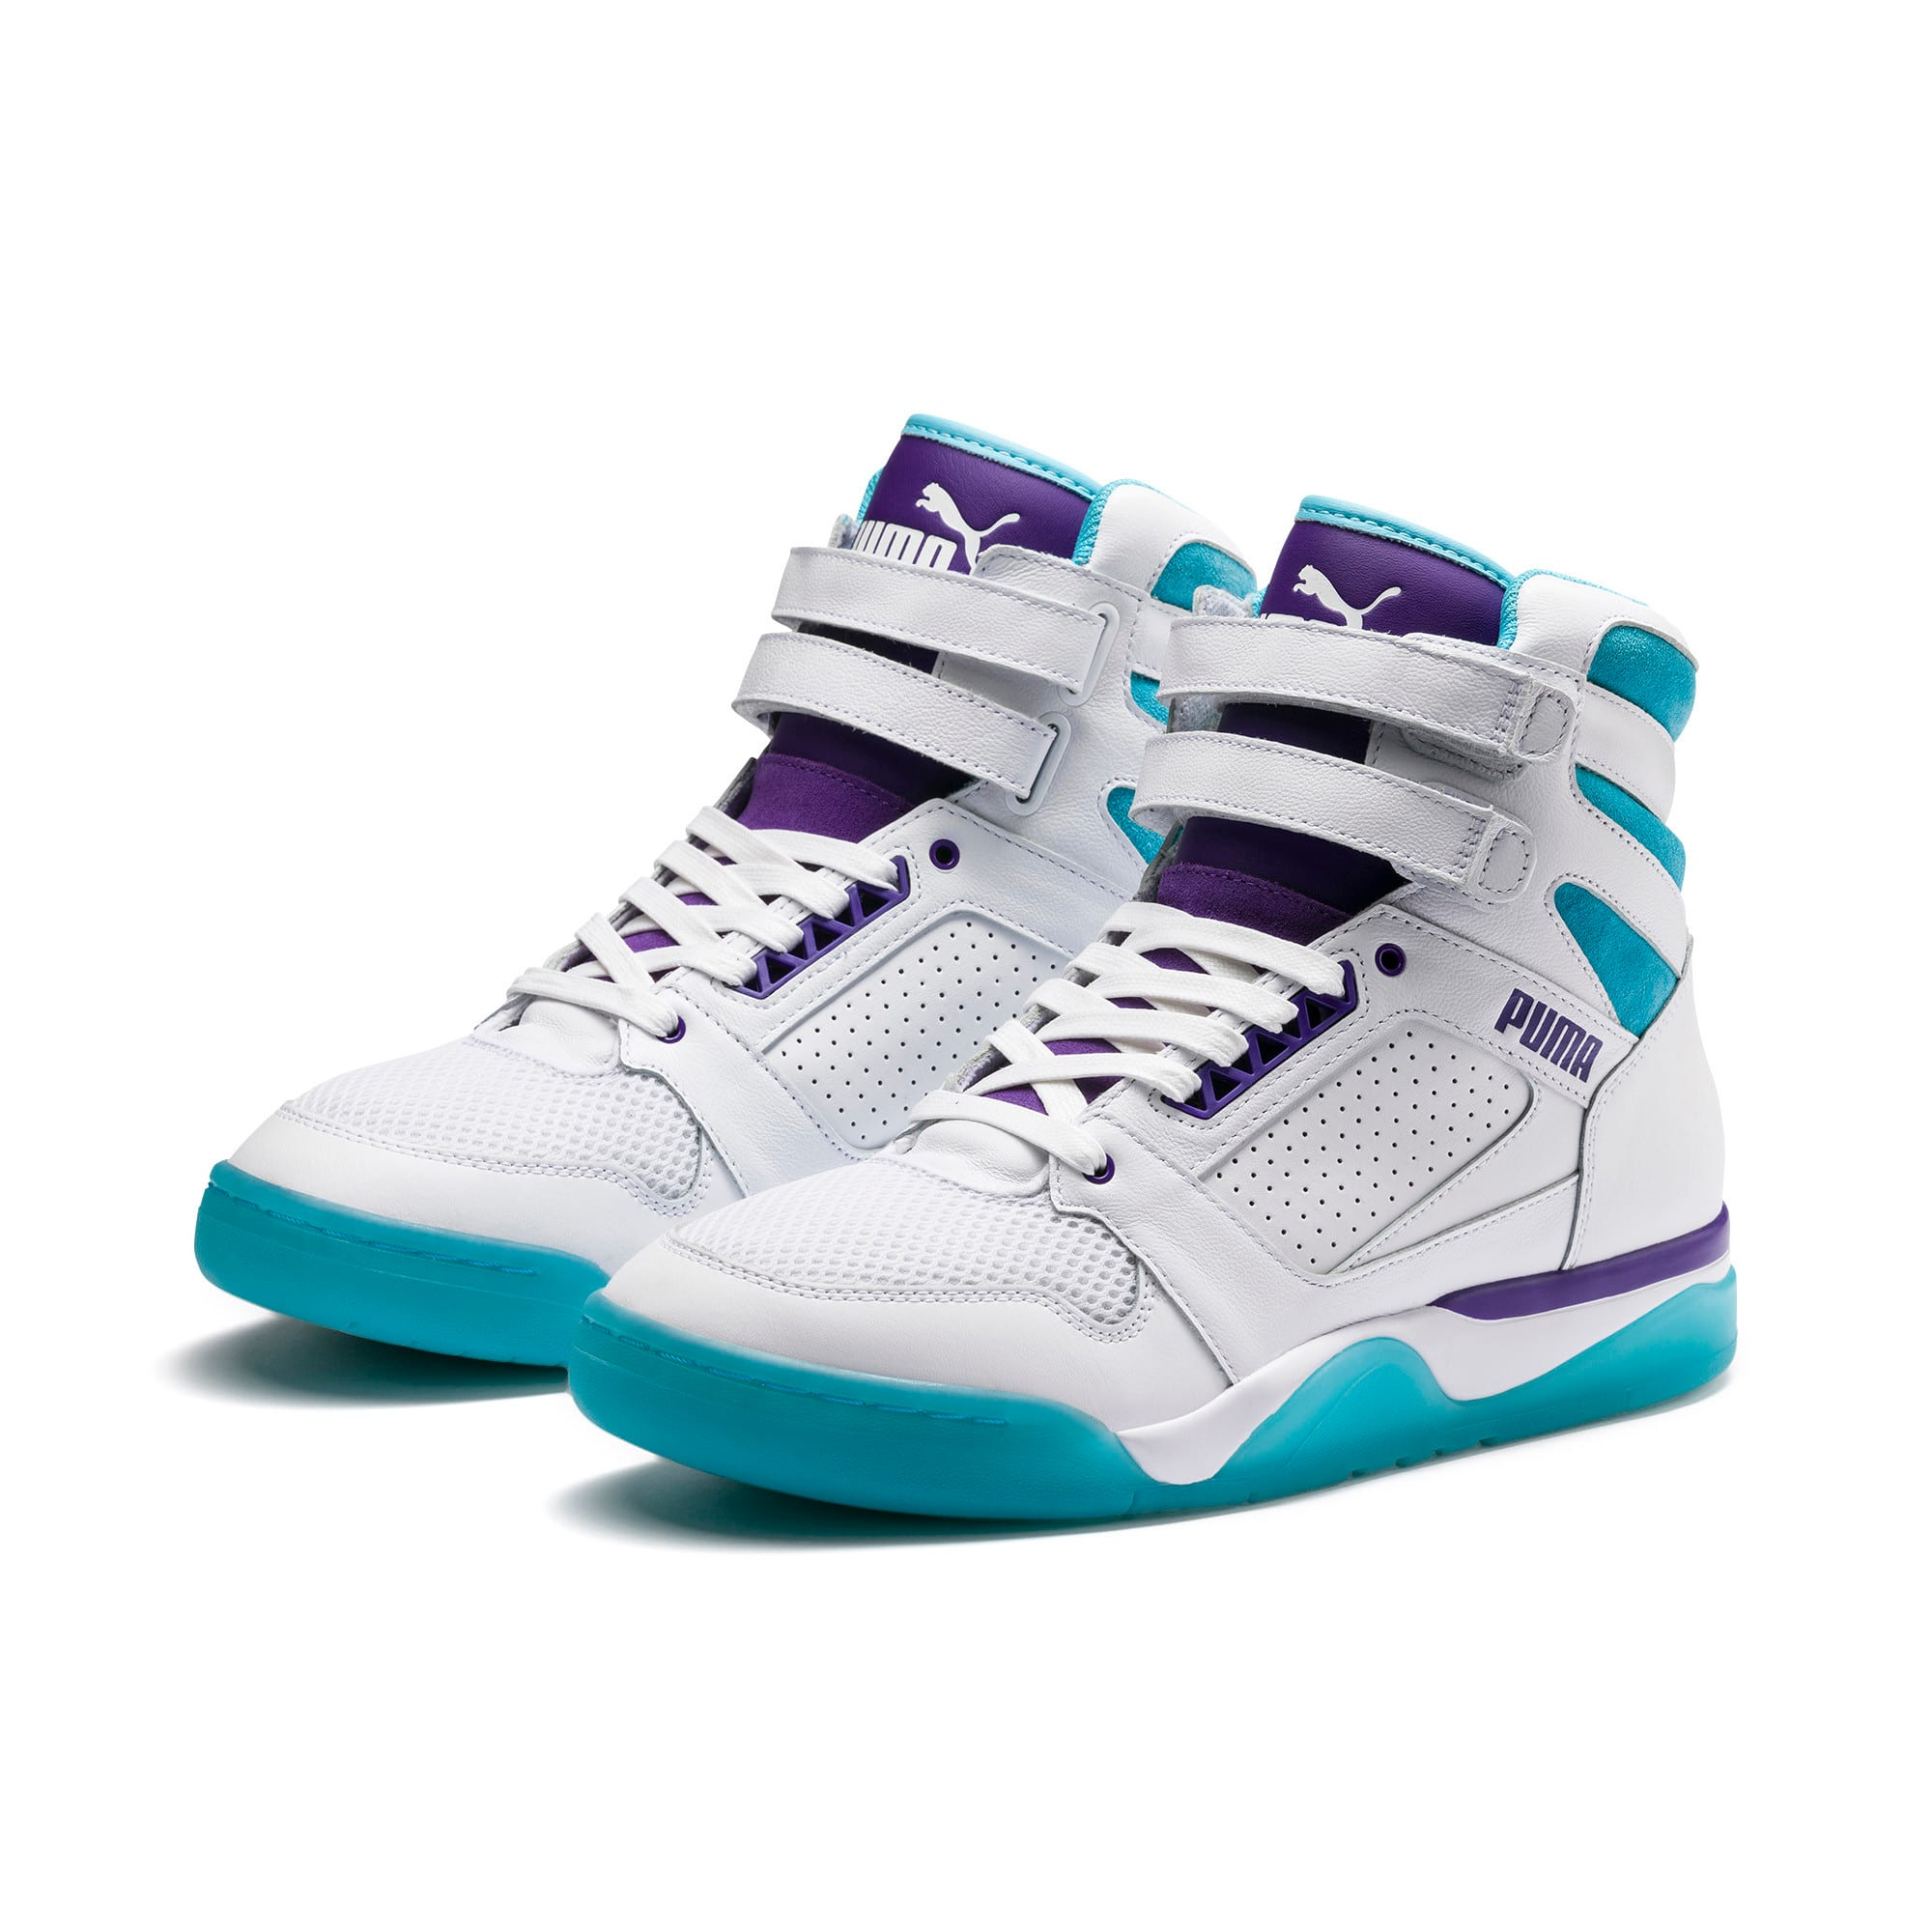 Thumbnail 2 of Palace Guard Mid Queen City Sneakers, Puma White-Blue Atoll, medium